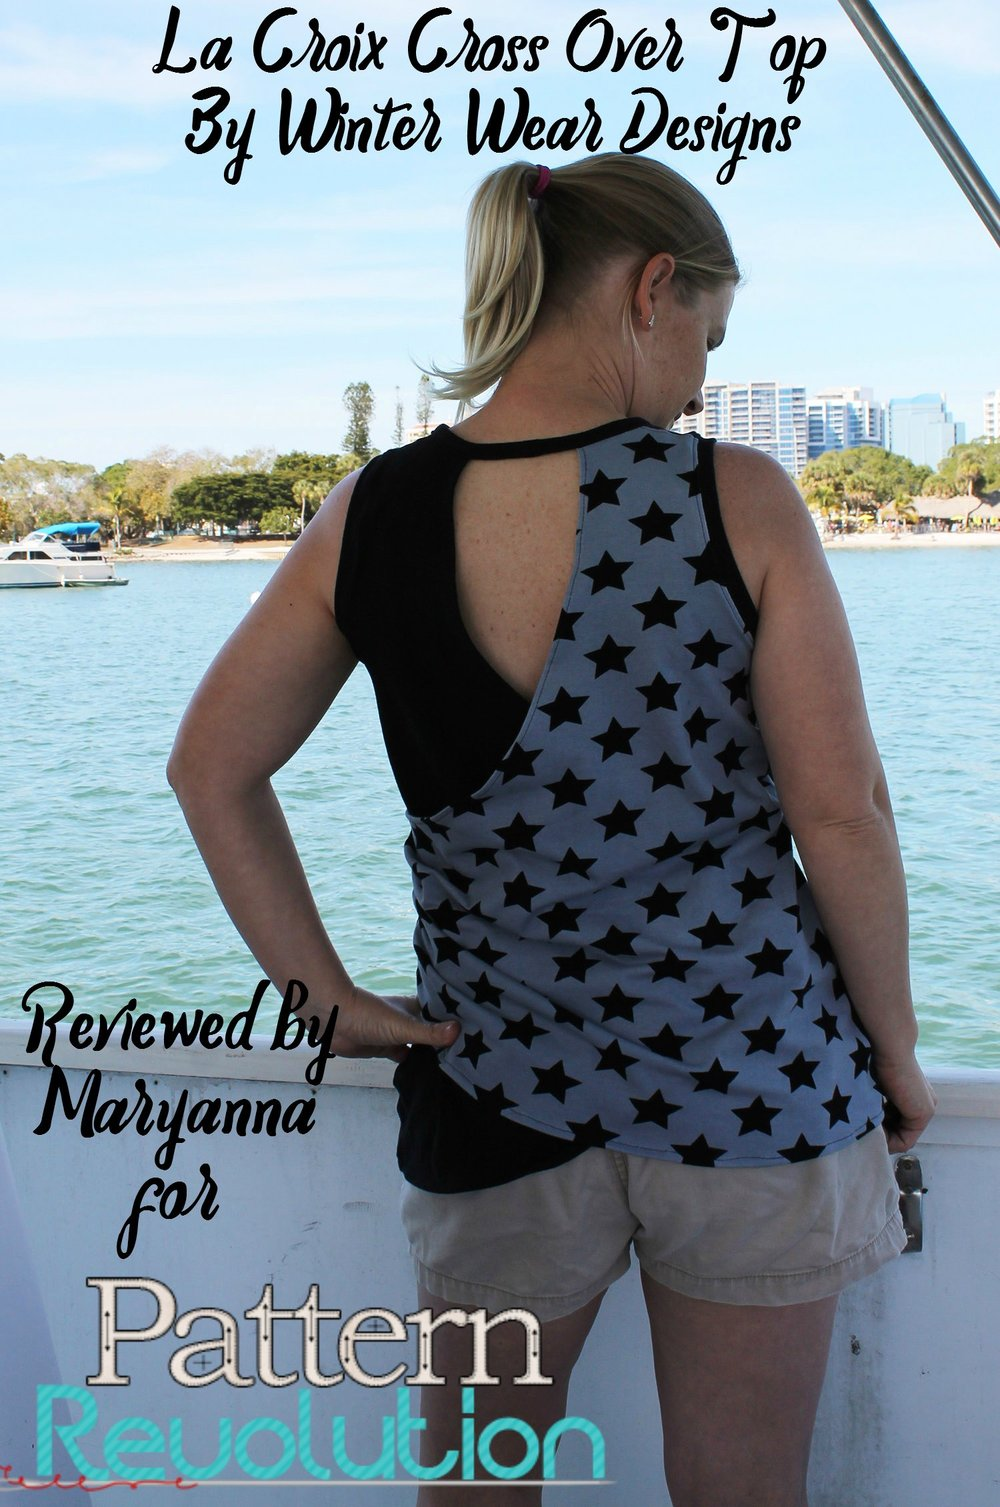 Maryanna's La Croix Top by Winter Wear Designs